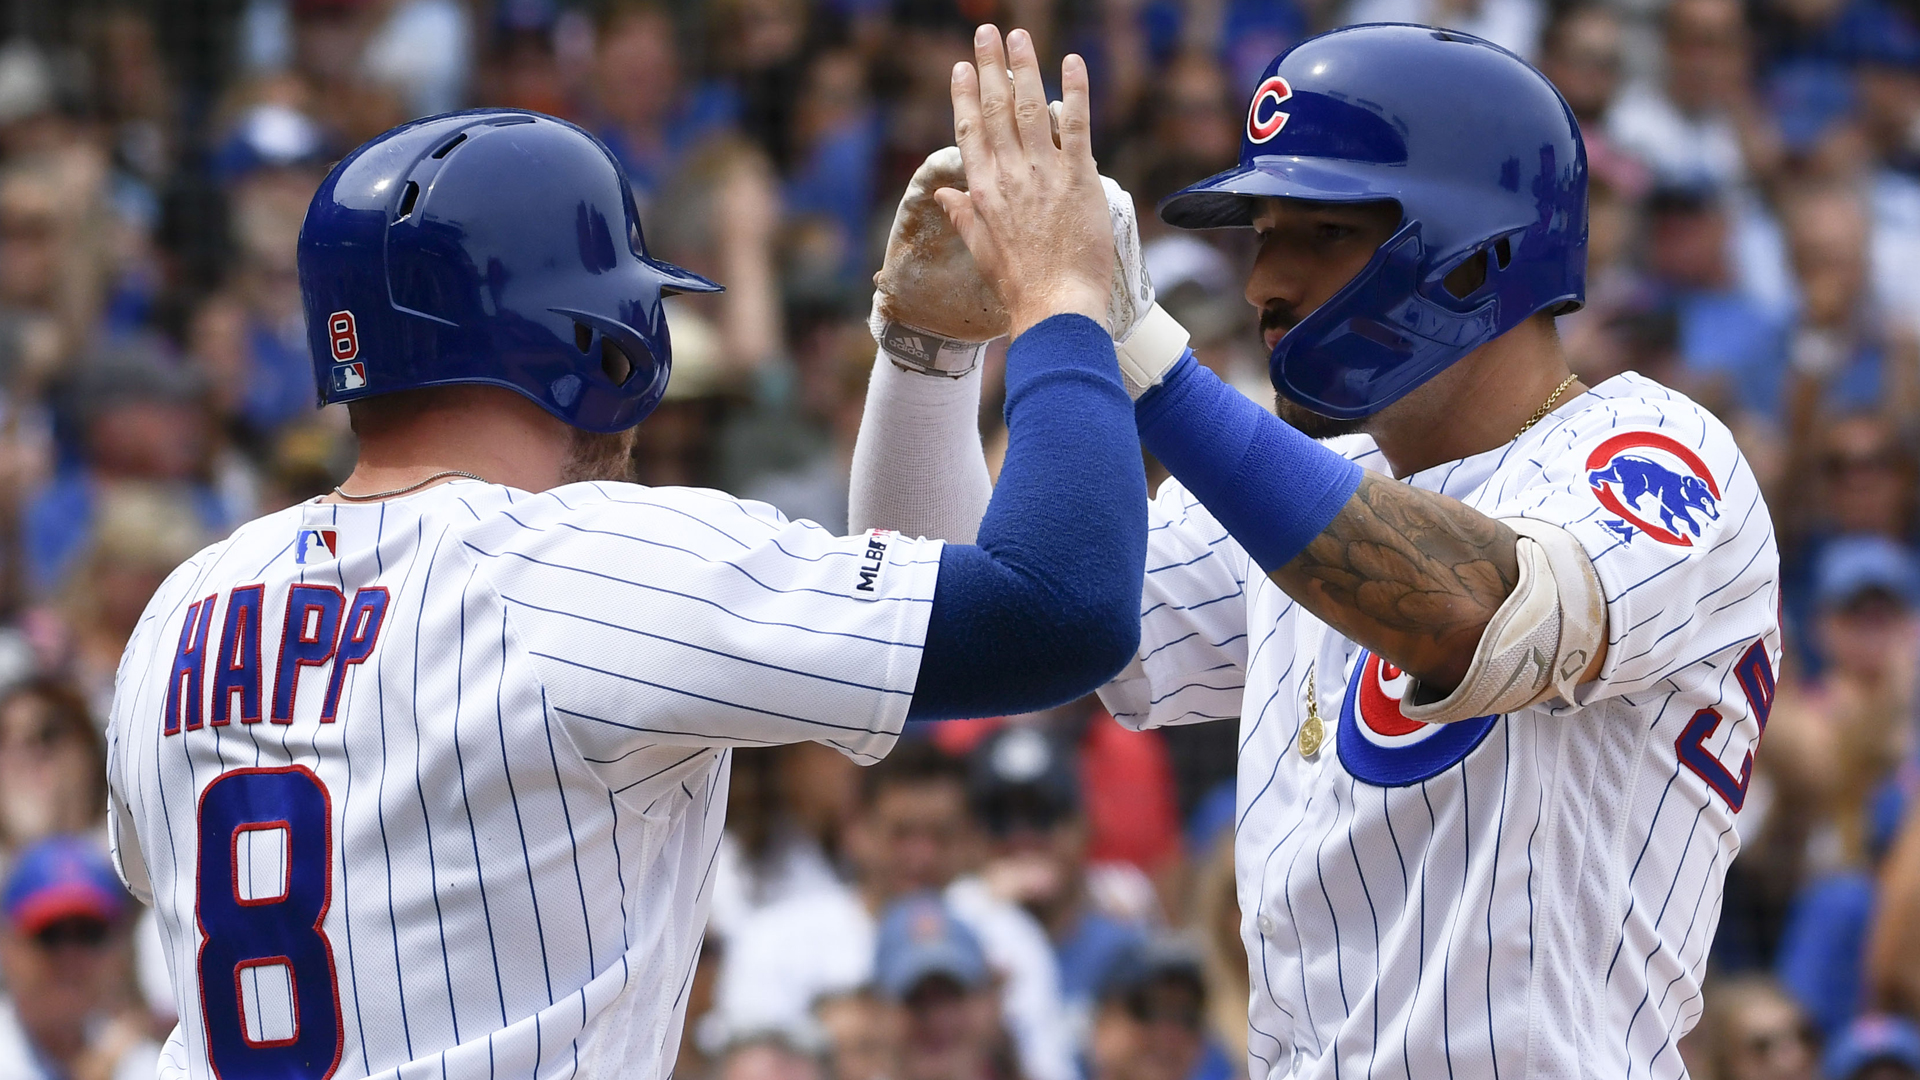 Sports Talk Live Podcast: Cubs win their second straight against the Mariners – NBCSports.com